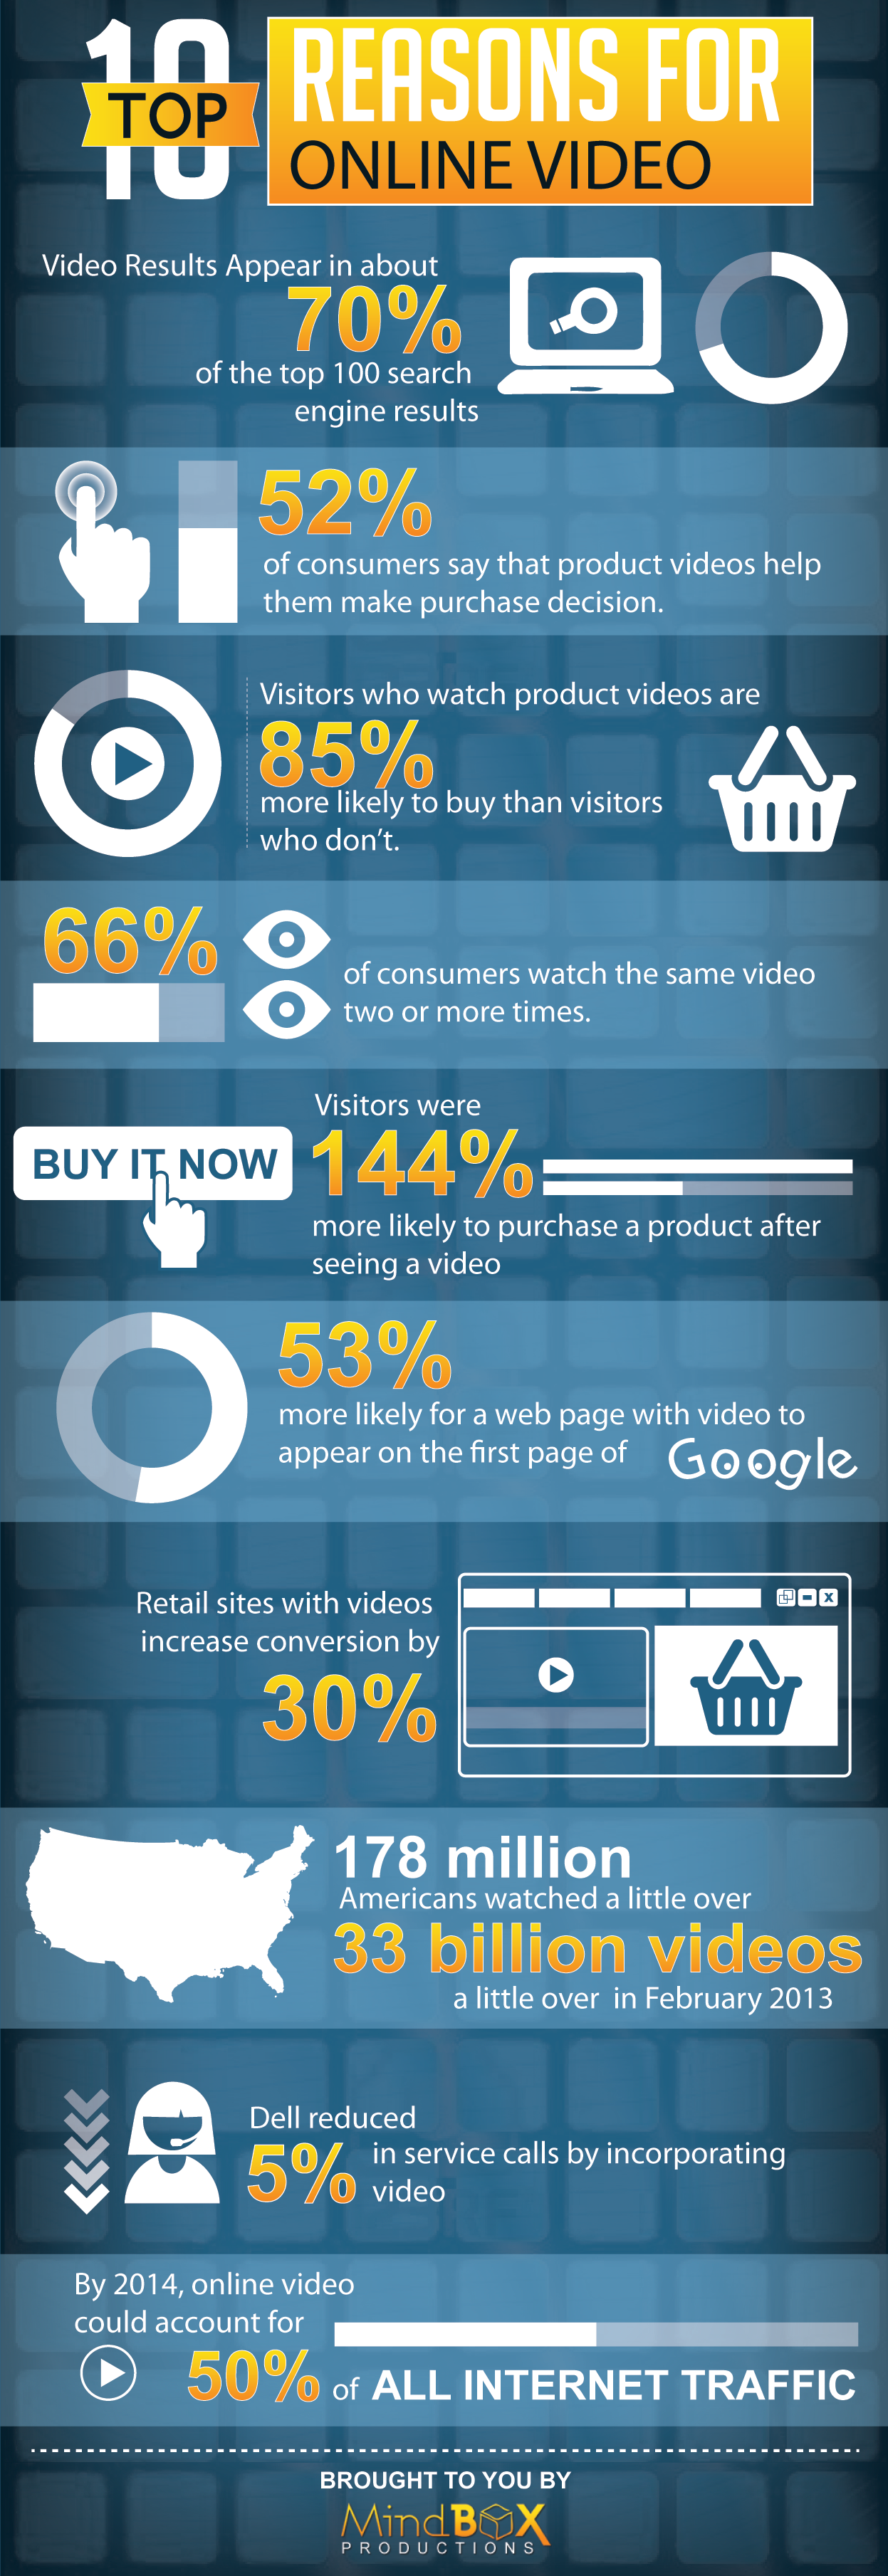 Top 10 Reasons To Prefer Online Videos (Infographic)